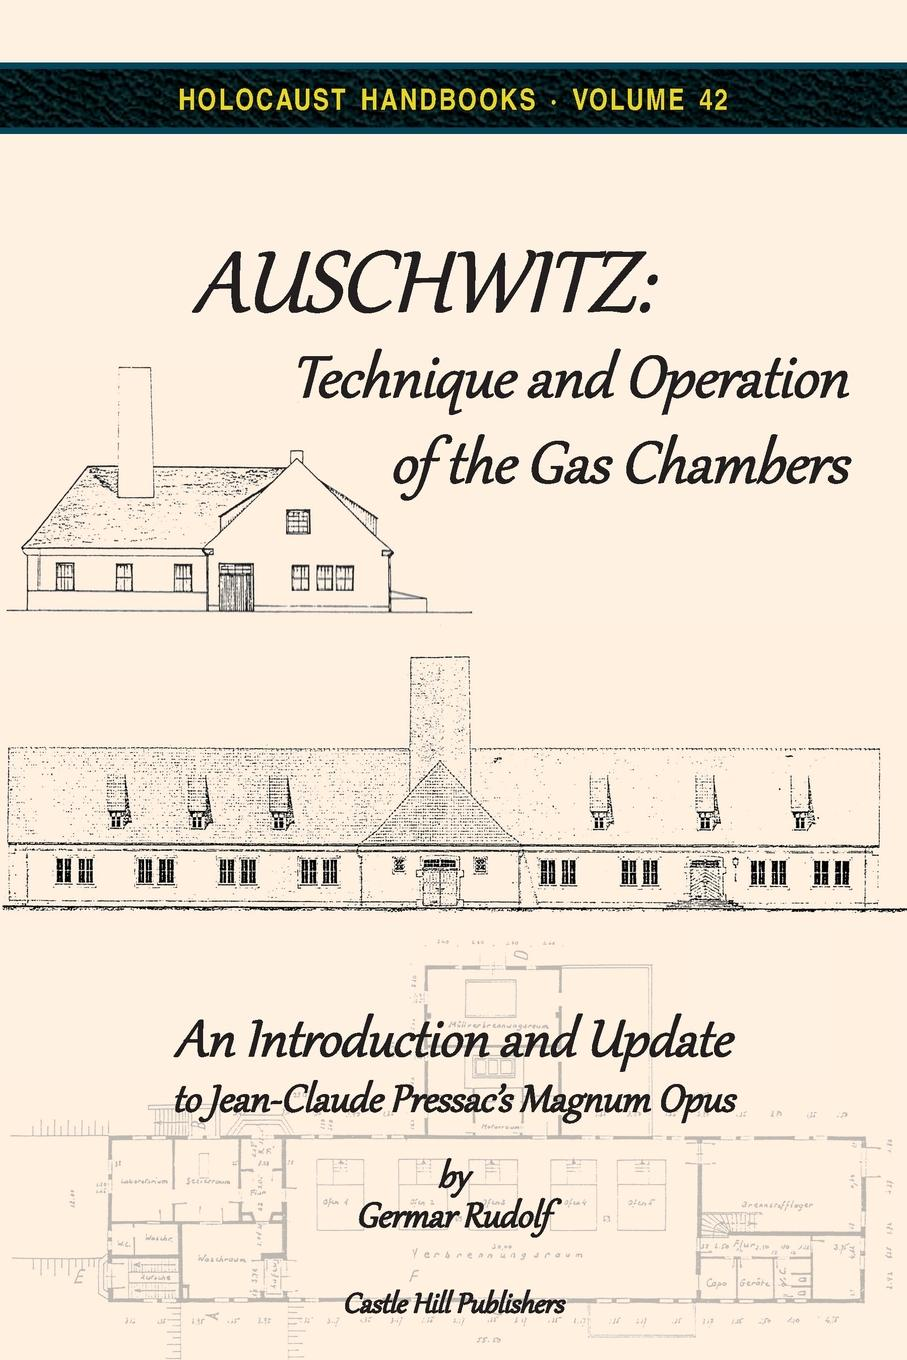 Germar Rudolf. Auschwitz. Technique and Operation of the Gas Chambers: An Introduction and Update to Jean-Claude Pressac.s Magnum Opus